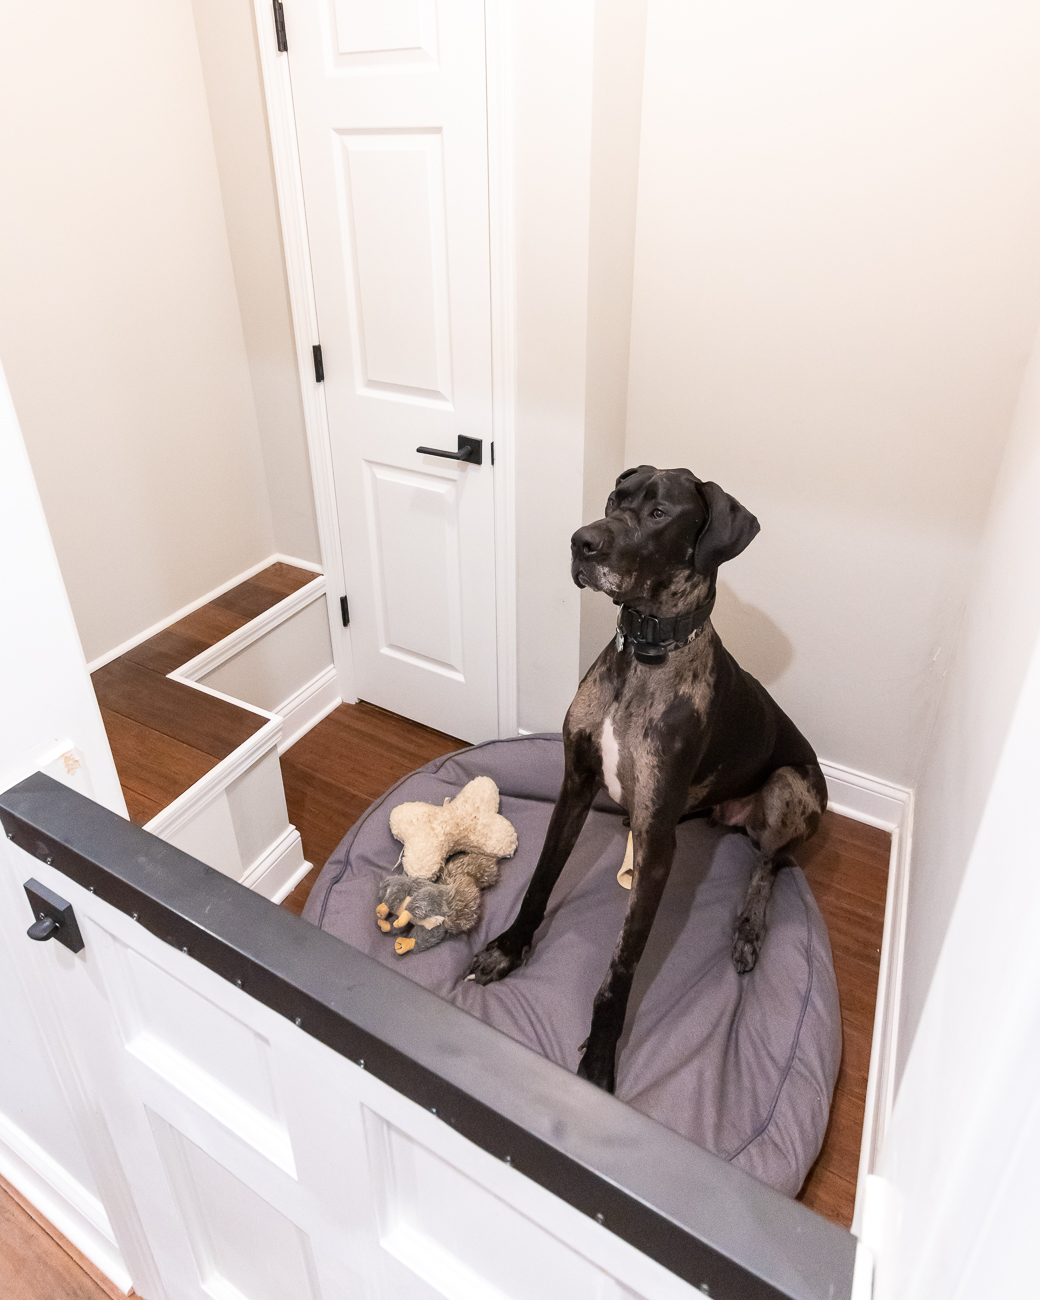 The new dog nook (big enough for a Great Dane) used to be where the furnace was located. The homeowner replaced the furnace and had the space converted. / Image: Phil Armstrong, Cincinnati Refined // Published: 6.5.20